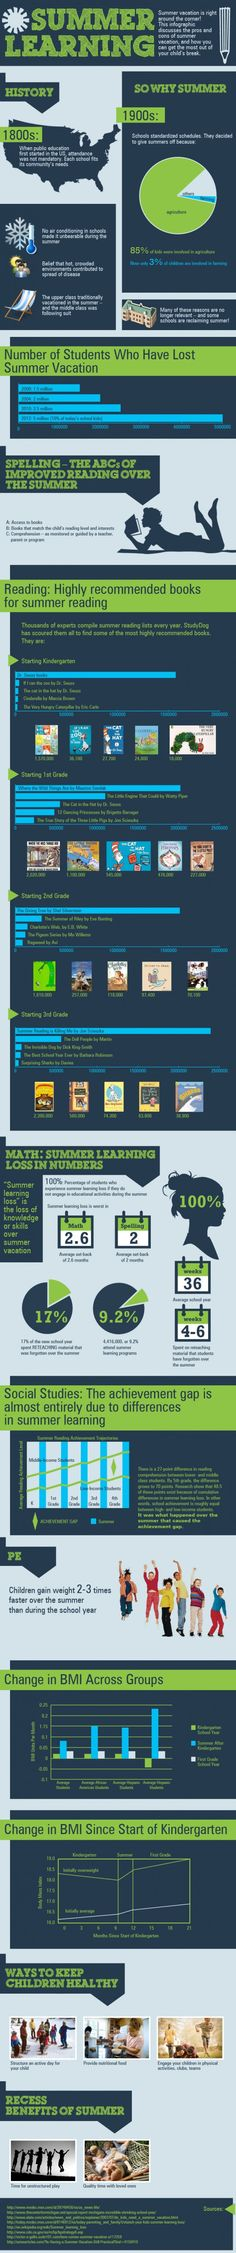 Summer Learning & #summerslide Infographic